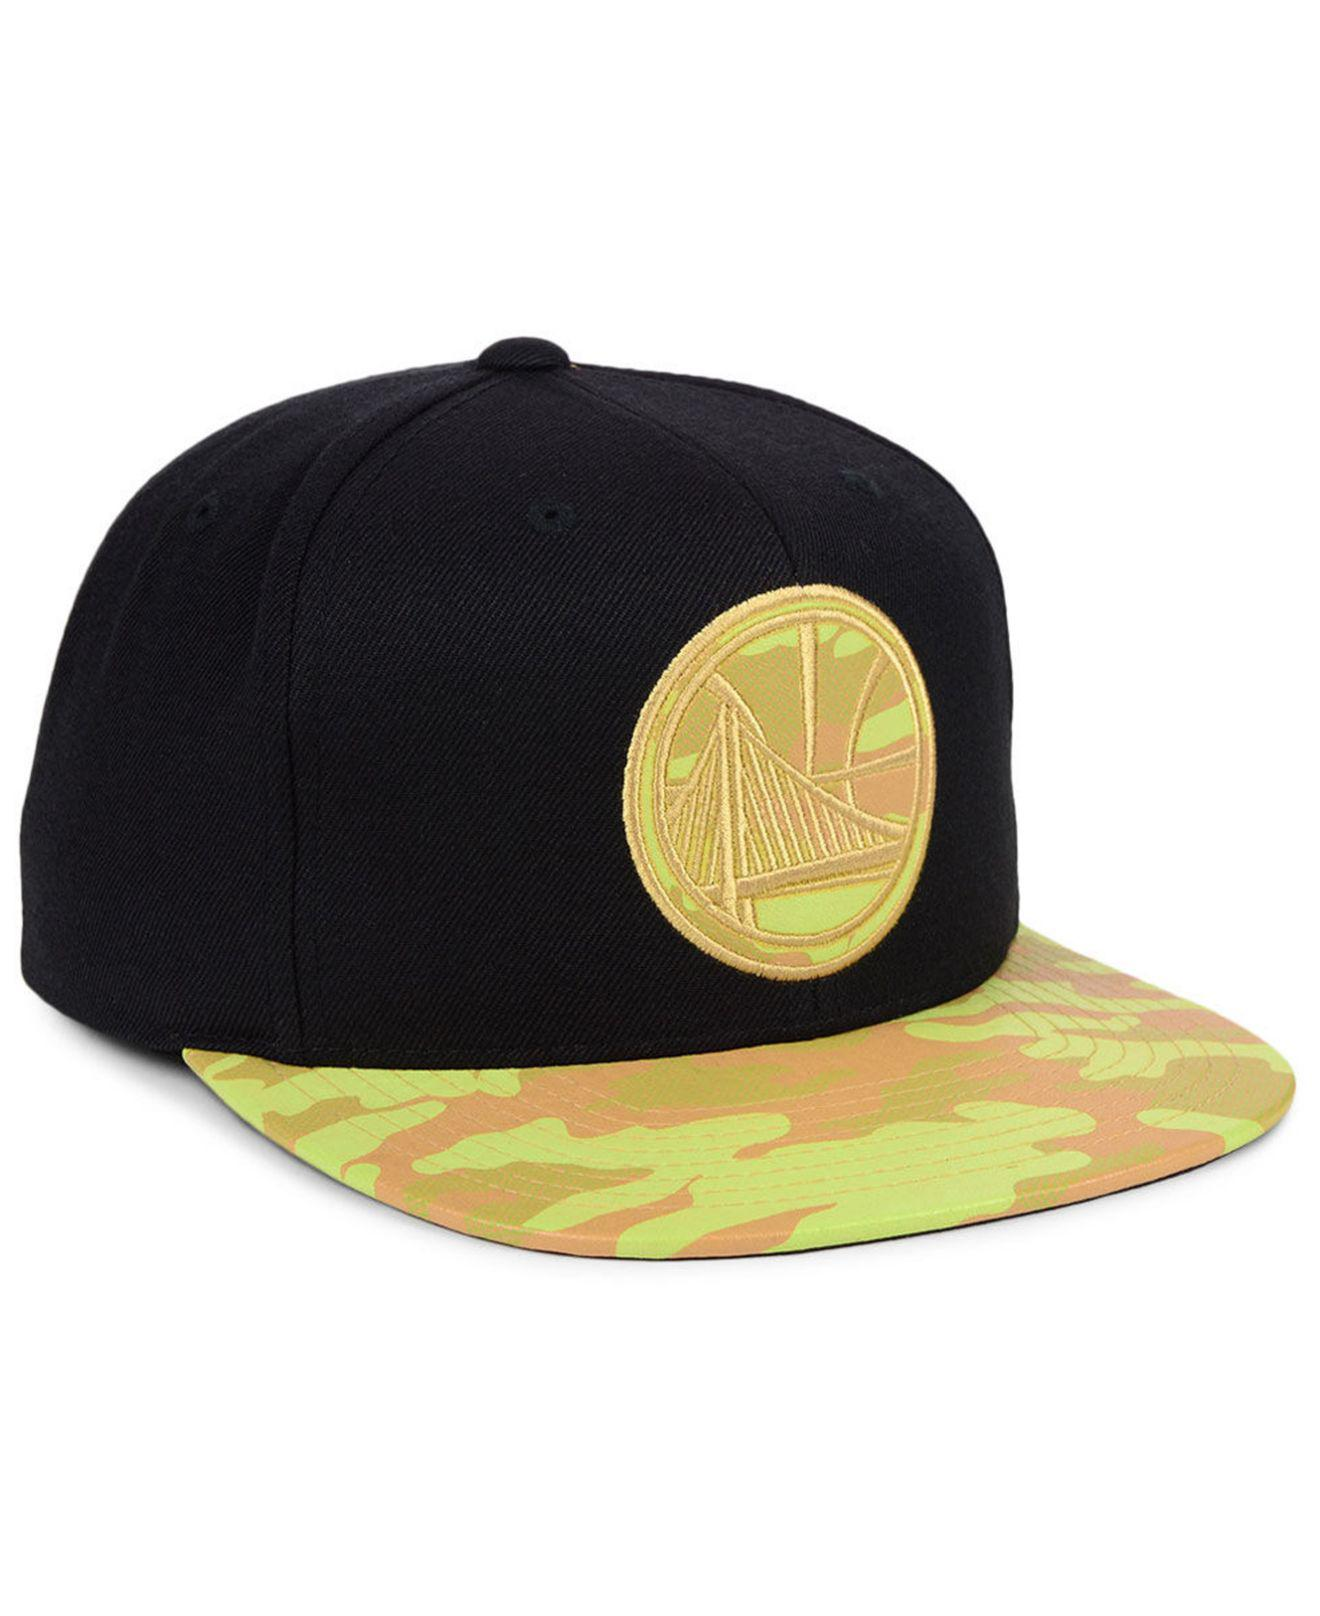 competitive price 5f393 d35a8 Mitchell   Ness - Black Golden State Warriors Natural Camo Snapback Cap for  Men - Lyst. View fullscreen